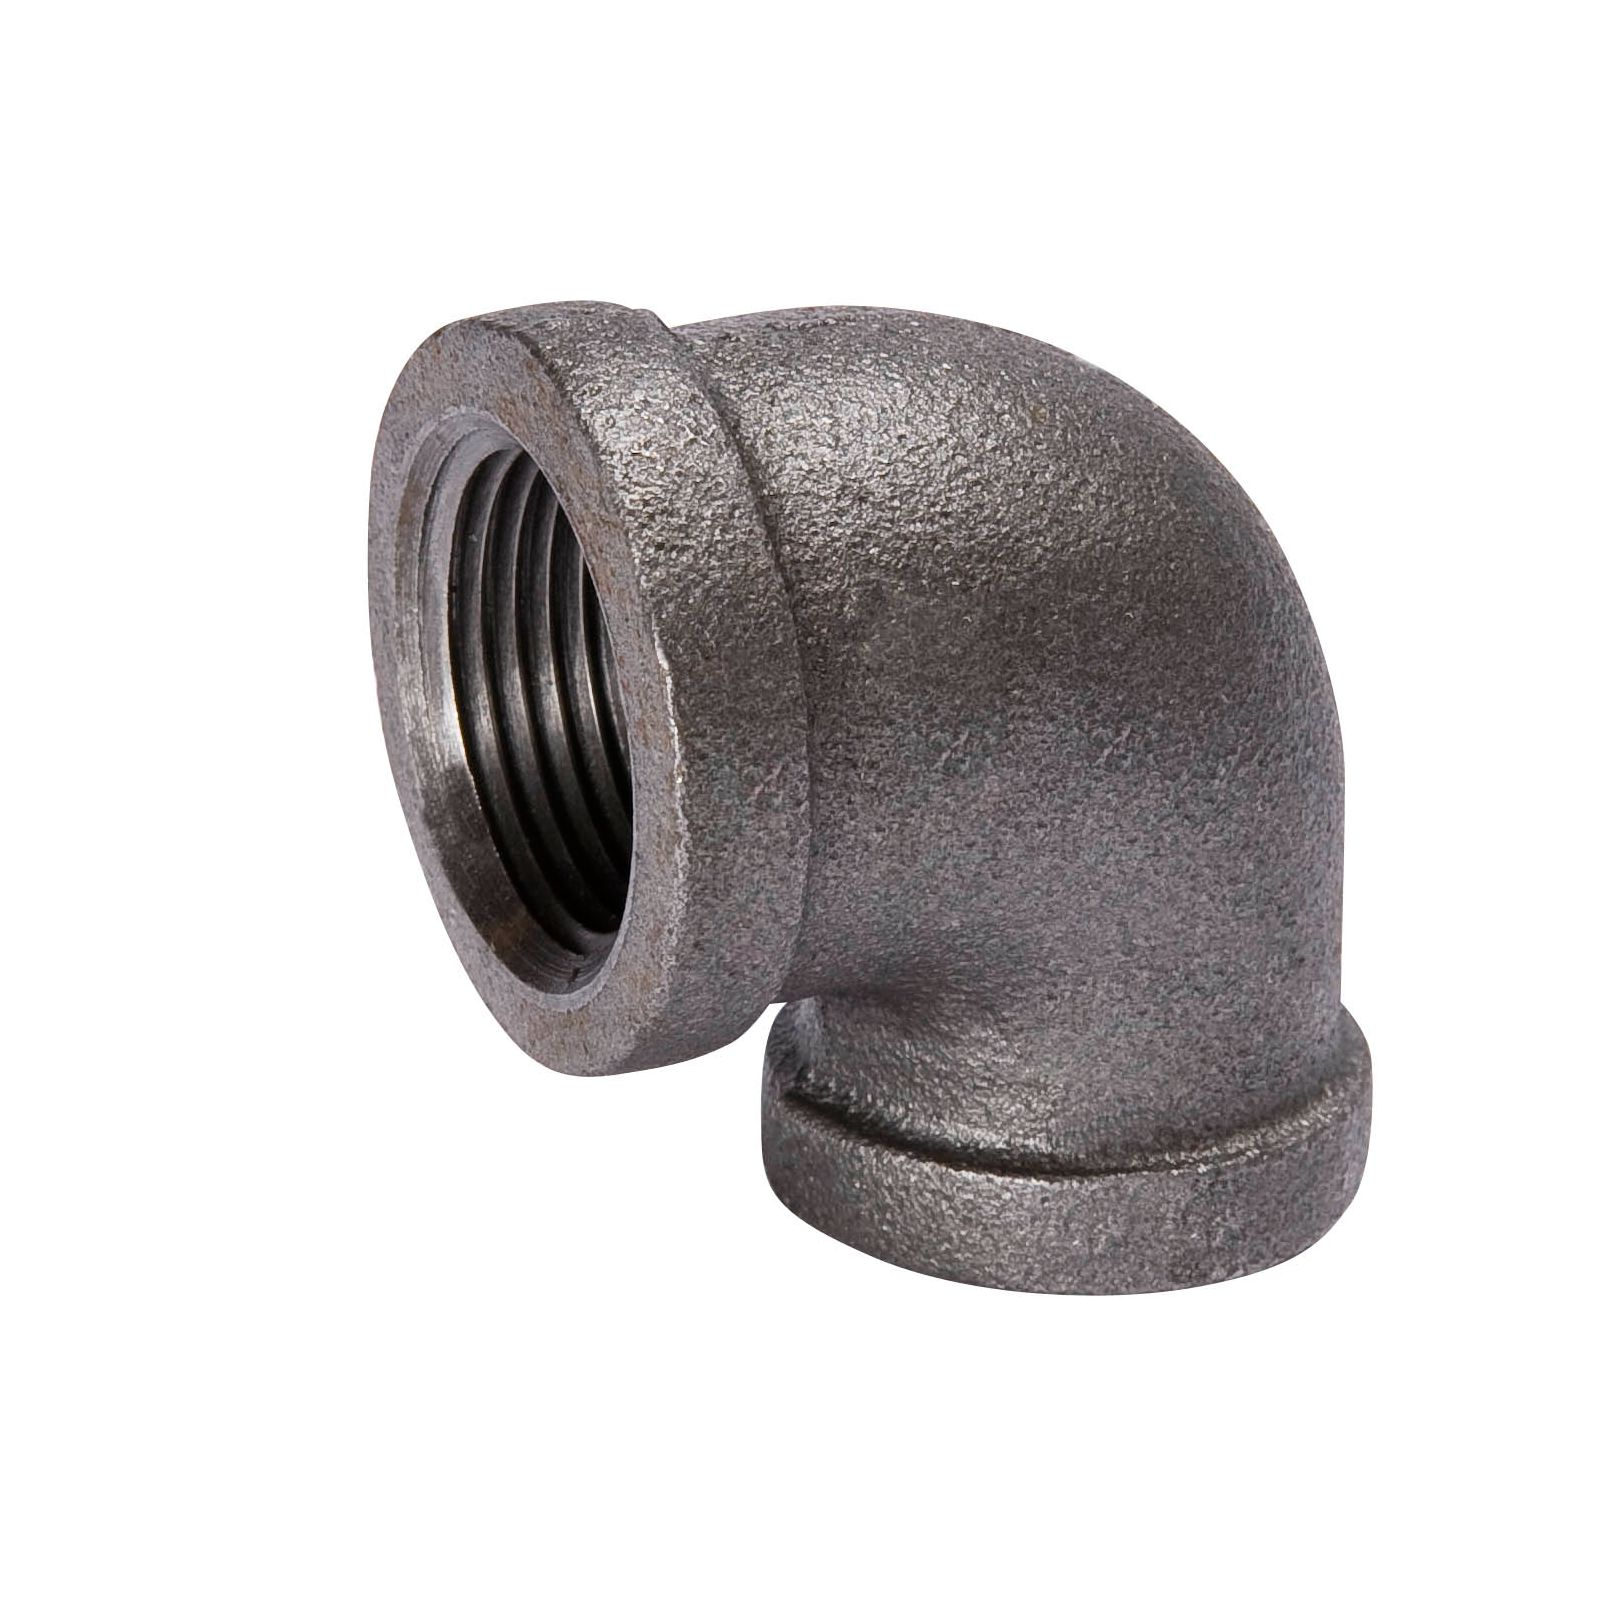 "Southland 520-143 - Black, 90 Degree Reducing Elbow, 3/4"" X 1/2"" I.D."